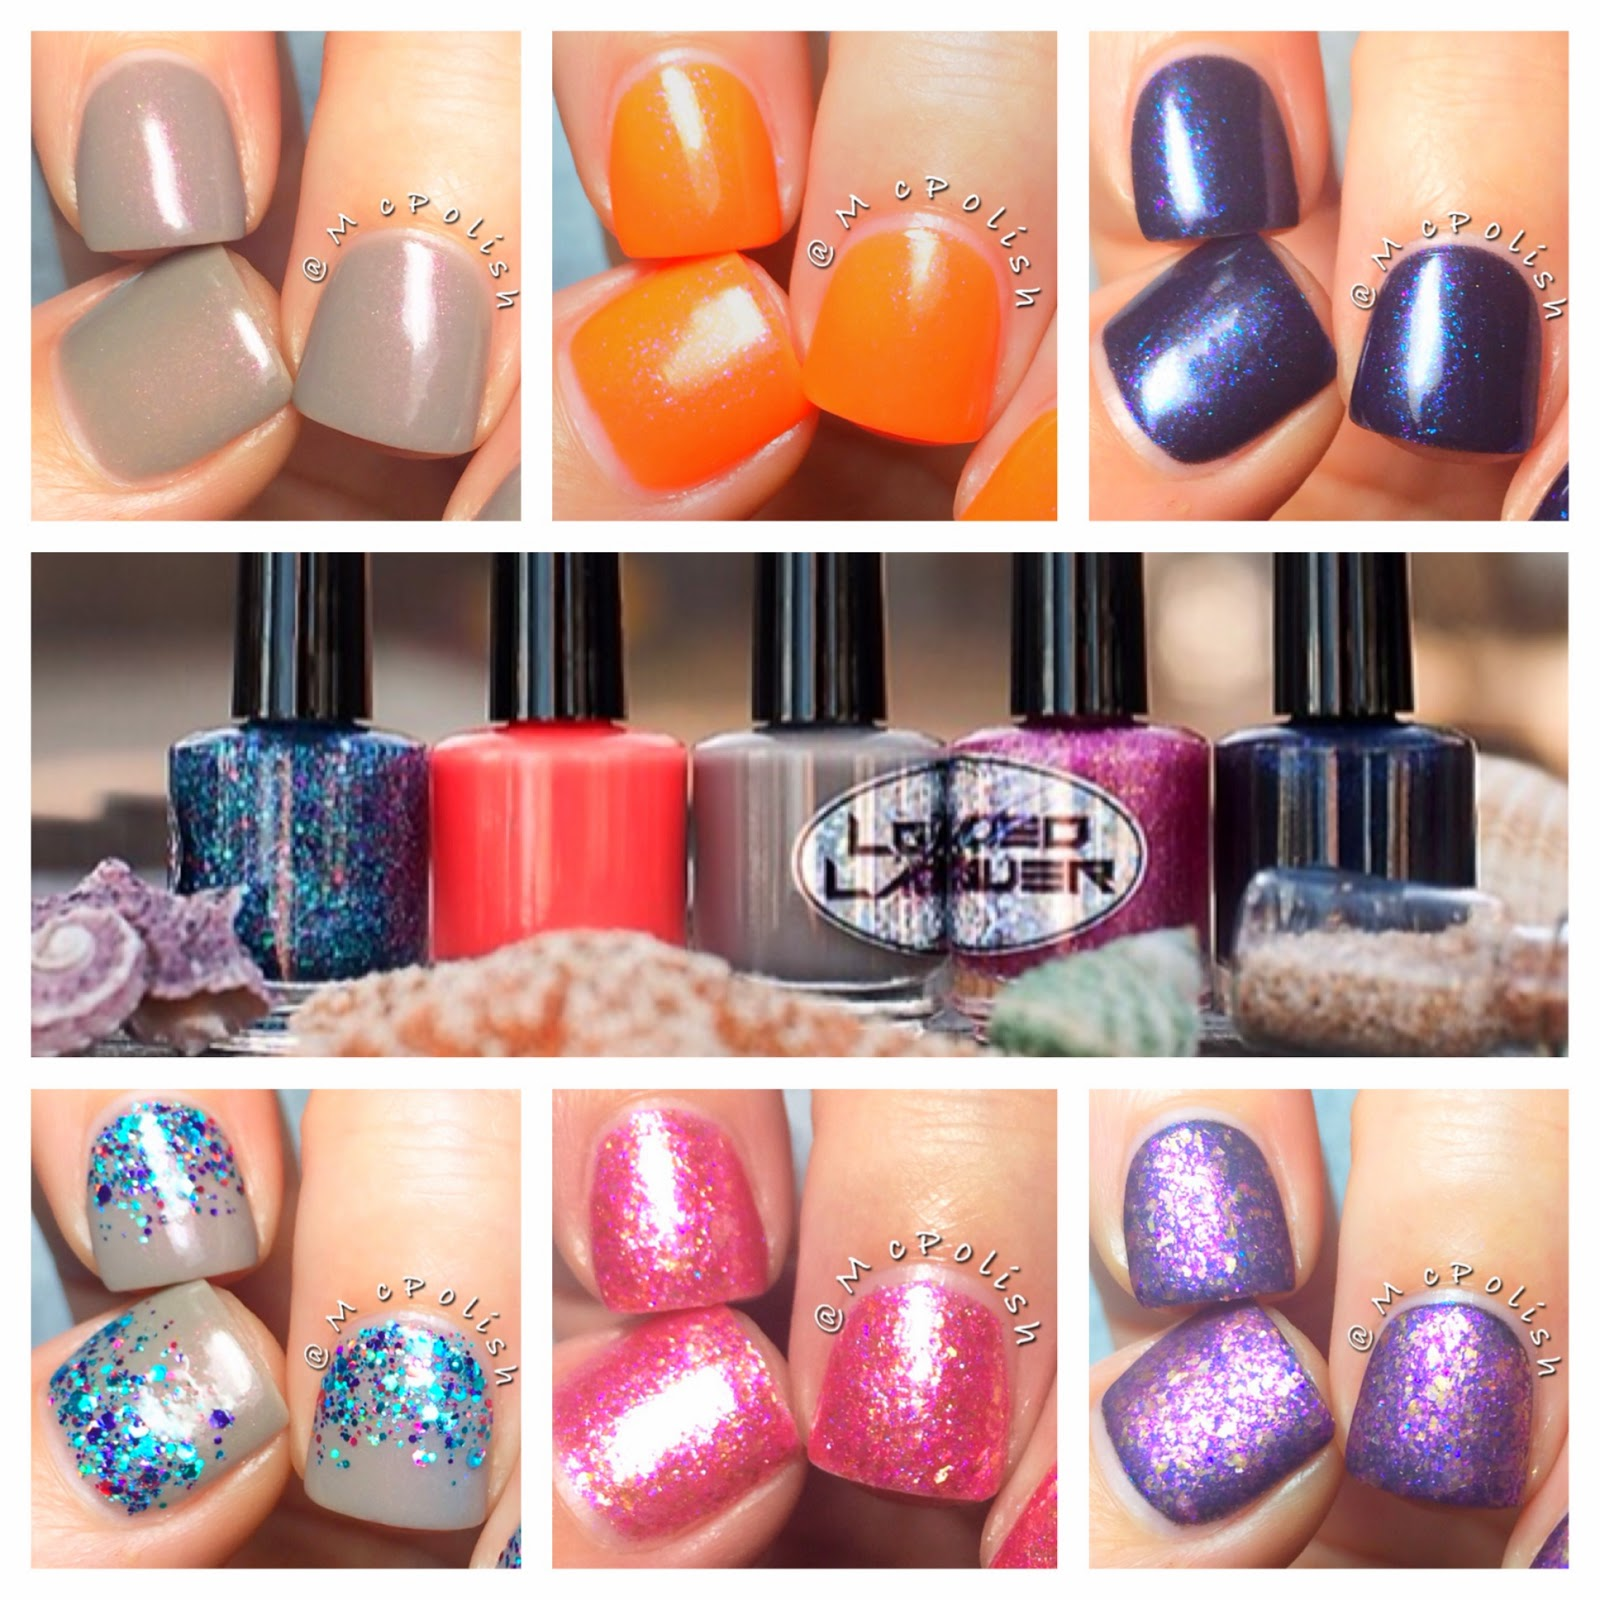 Loaded Lacquer - Hula Girl Collection - McPolish